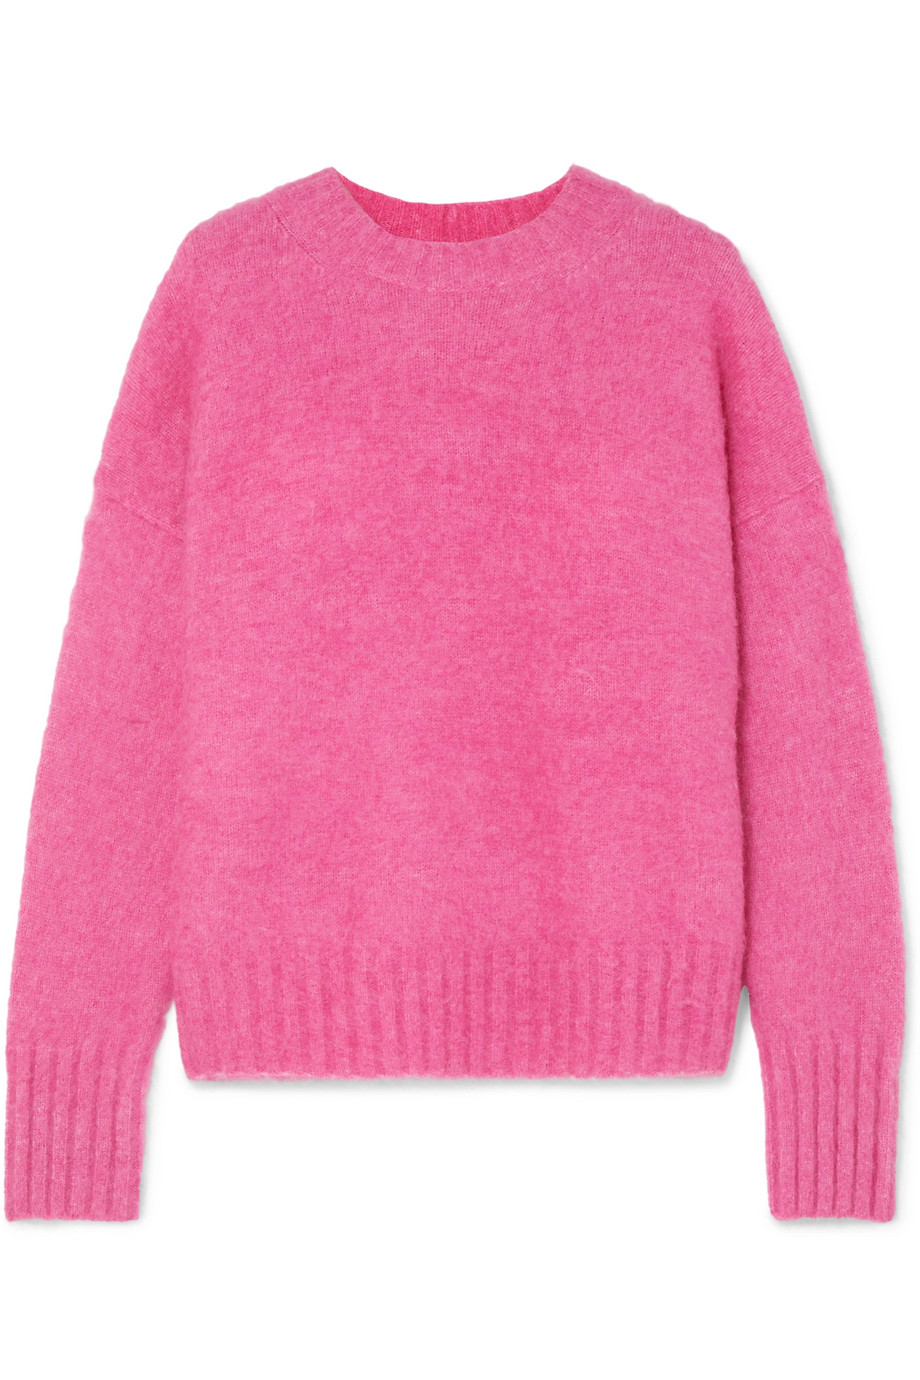 Hot Pink Knitted Alpaca Sweater Helmut Lang